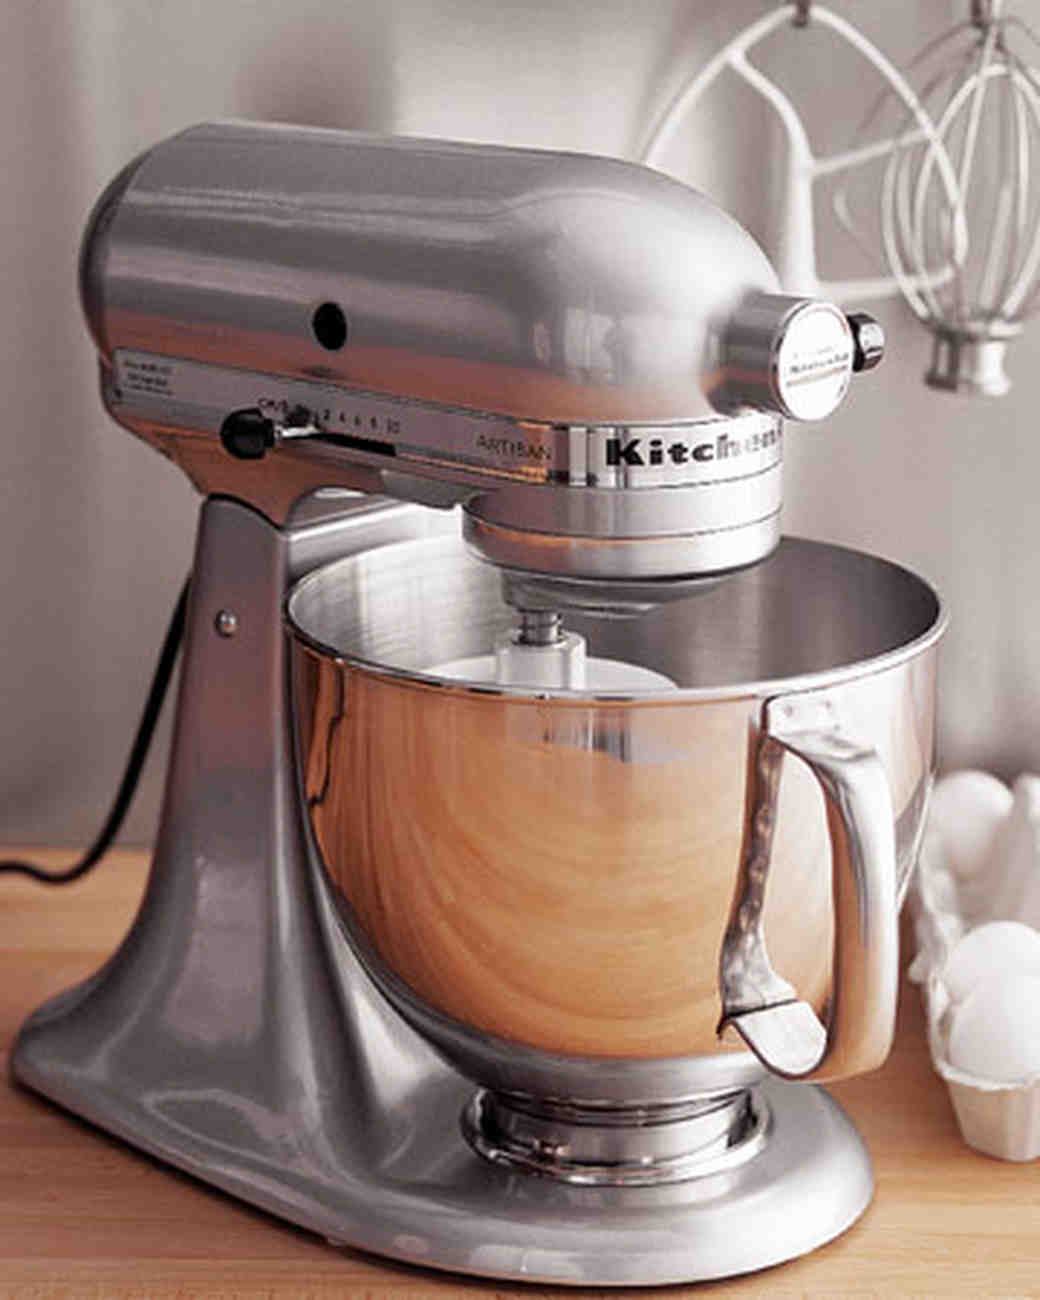 crate_barr_kitchenaidartisnmixfh04.jpg